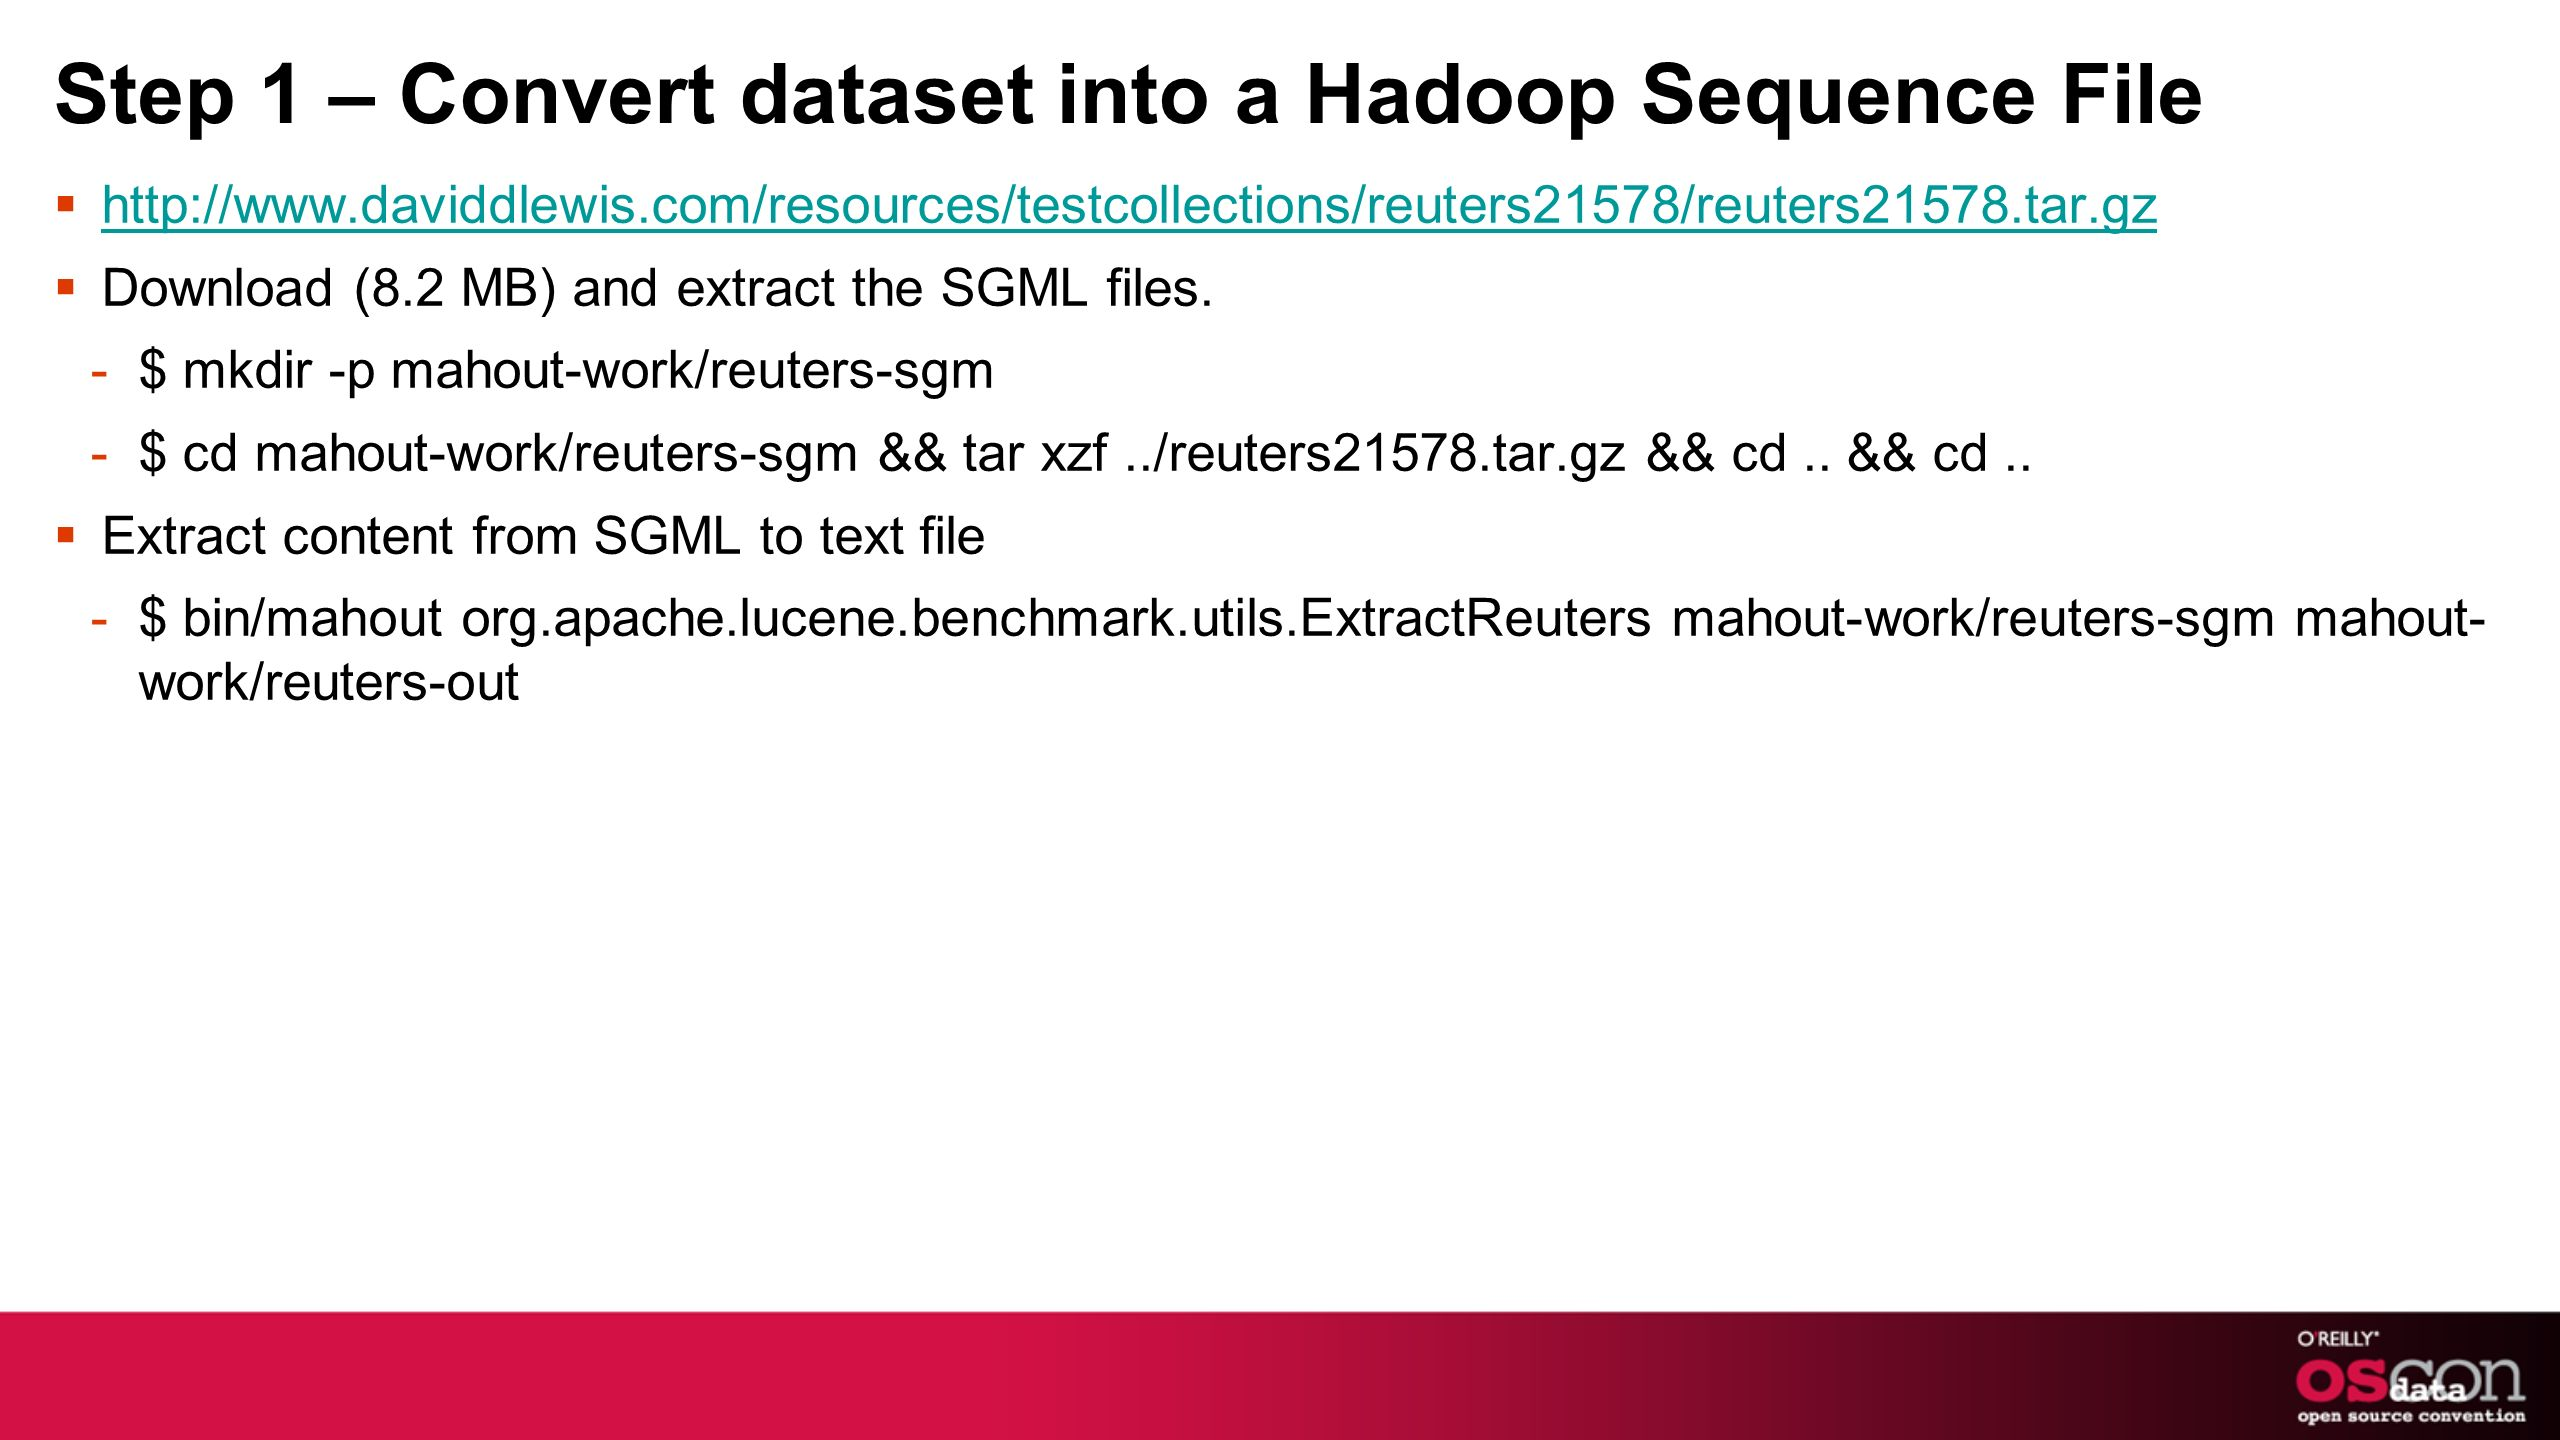 Step 1 – Convert dataset into a Hadoop Sequence File http://www.daviddlewis.com/resources/testcollections/reuters21578/reuters21578.tar.gz Download (8